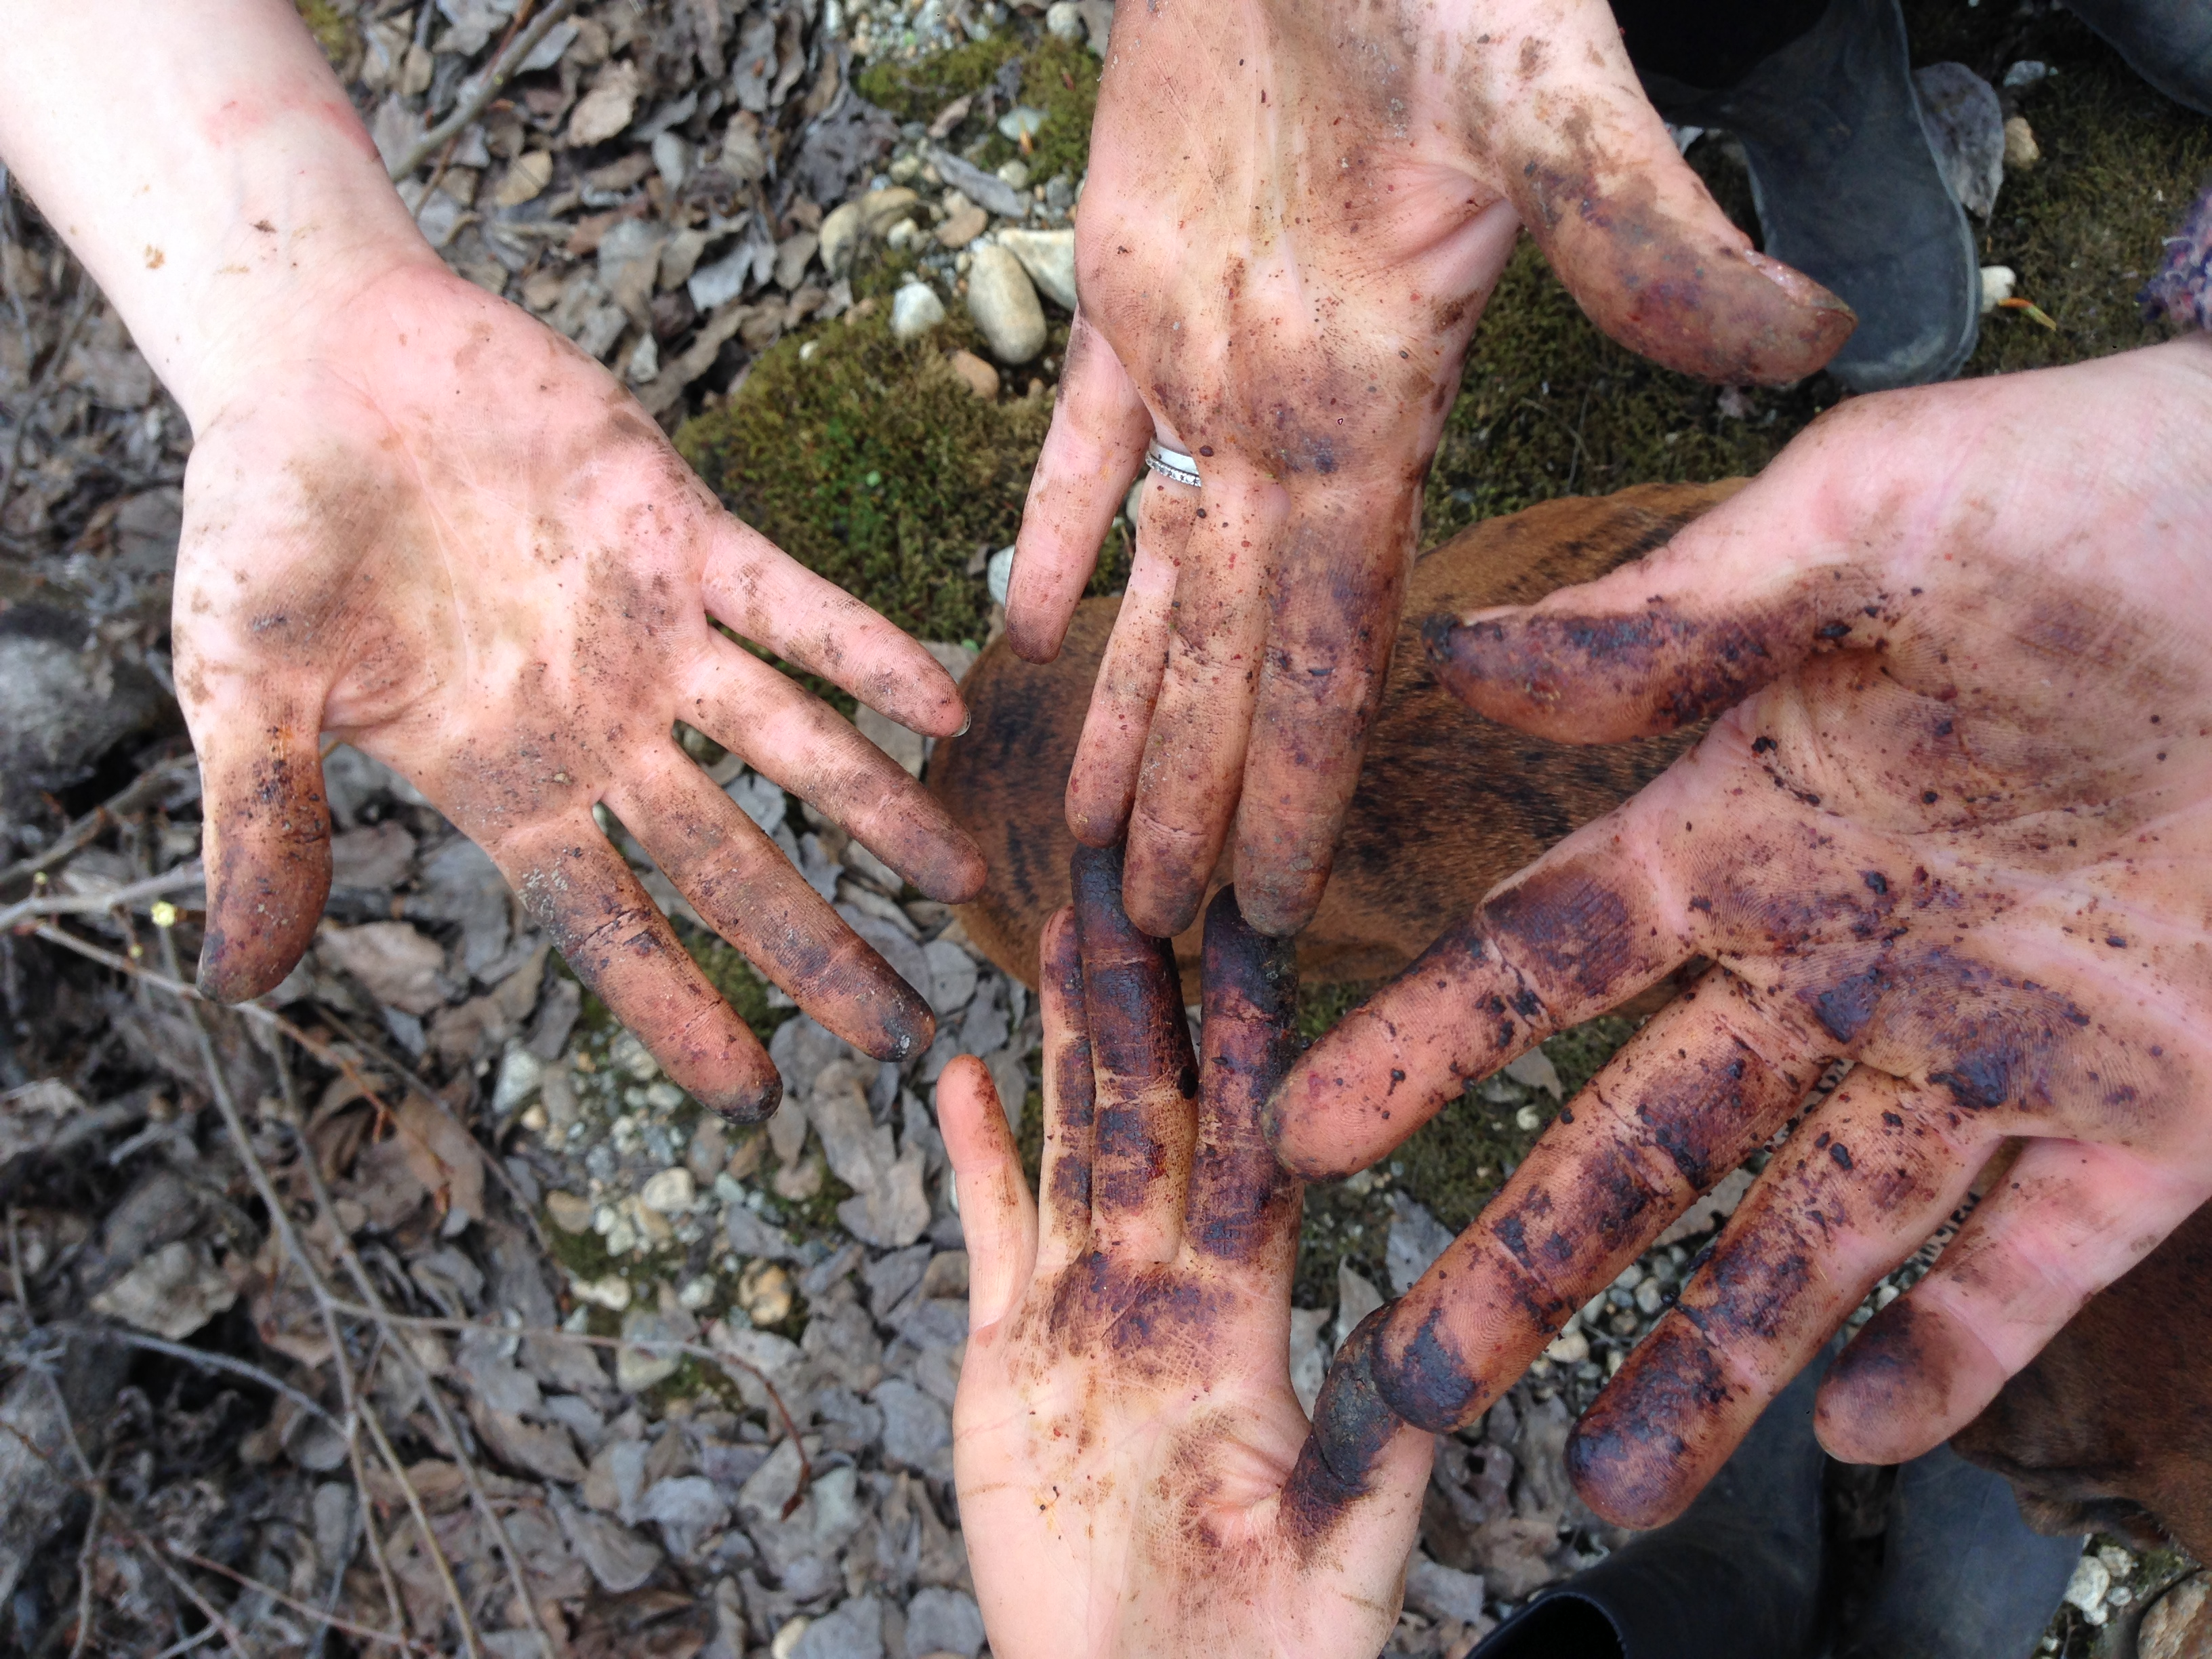 Four Happy Hands After An Afternoon Of Collecting Sticky Cottonwood Buds For The Balm Of Gilead Salve